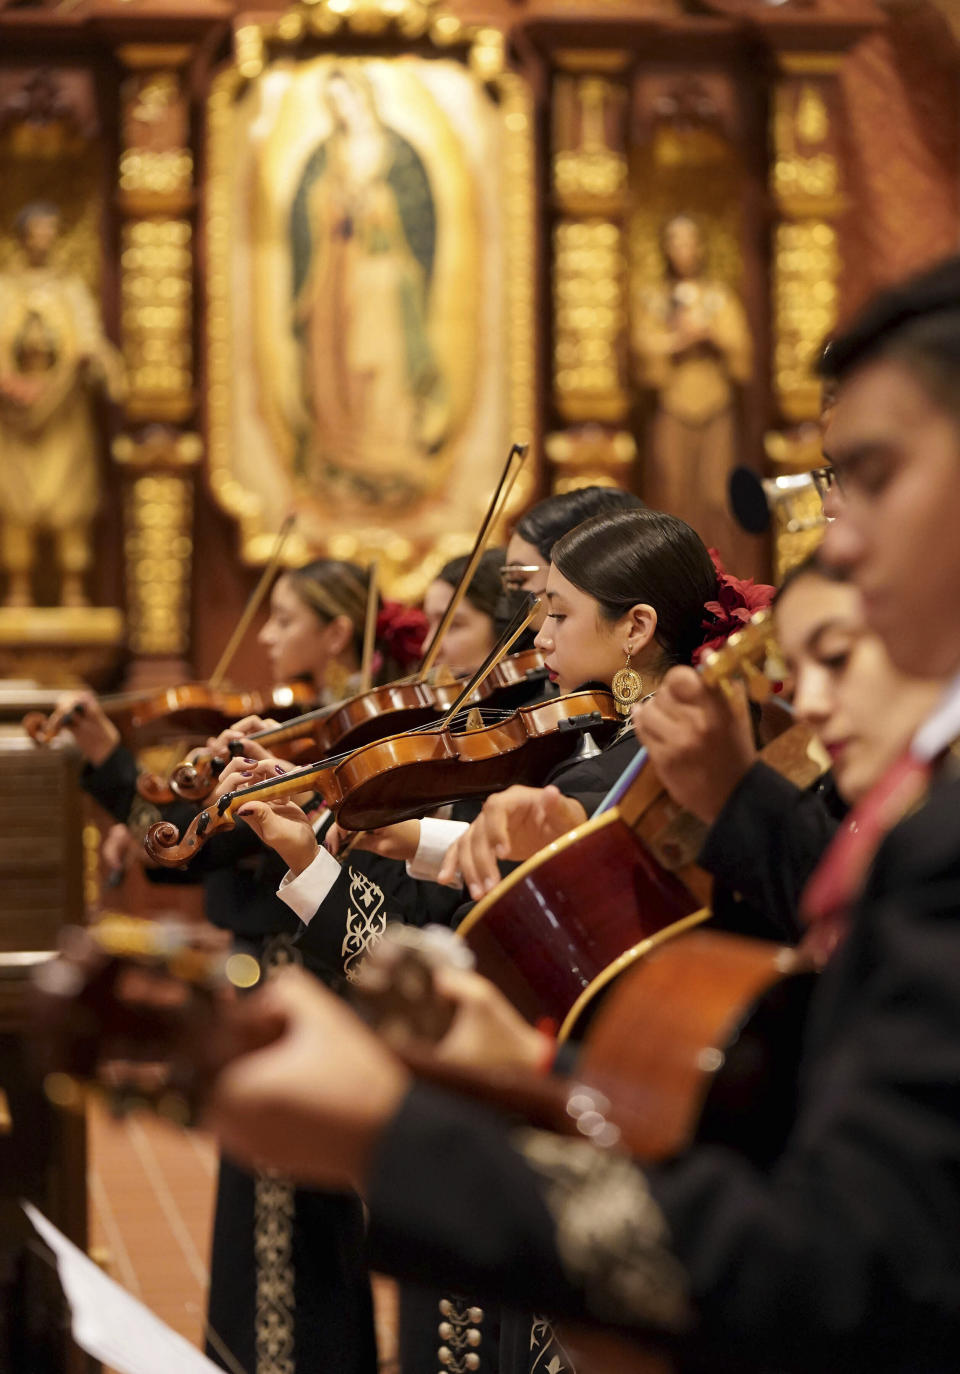 Mariachi band Los Changuitos Feos (Ugly Little Monkeys) members preform for parishioners after a morning Mass at St. Augustine Cathedral Sunday, Aug. 18, 2021 in downtown Tucson. (AP Photo/Darryl Webb)